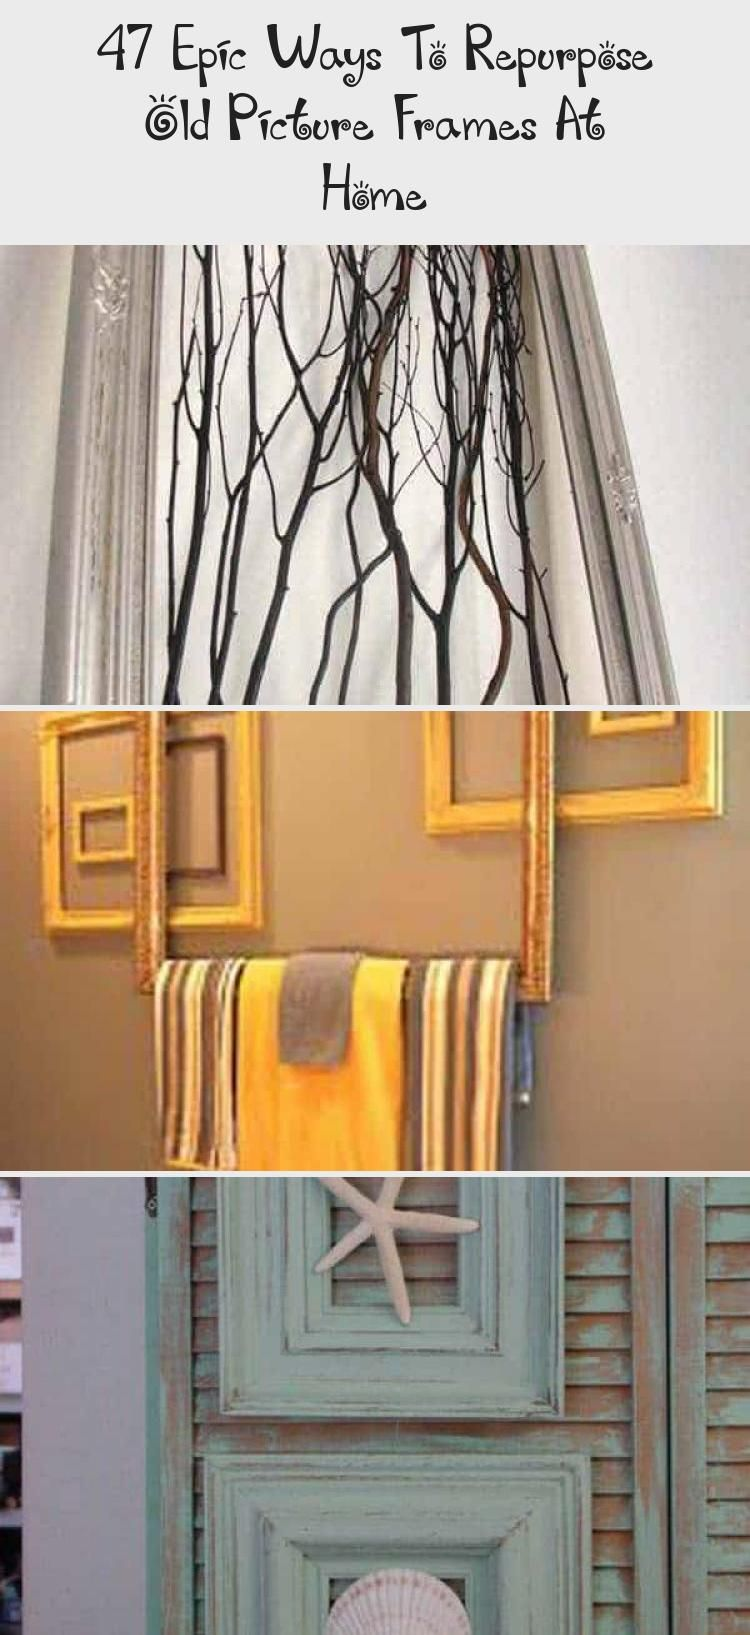 47 Epic Ways To Repurpose Old Picture Frames At Home Old